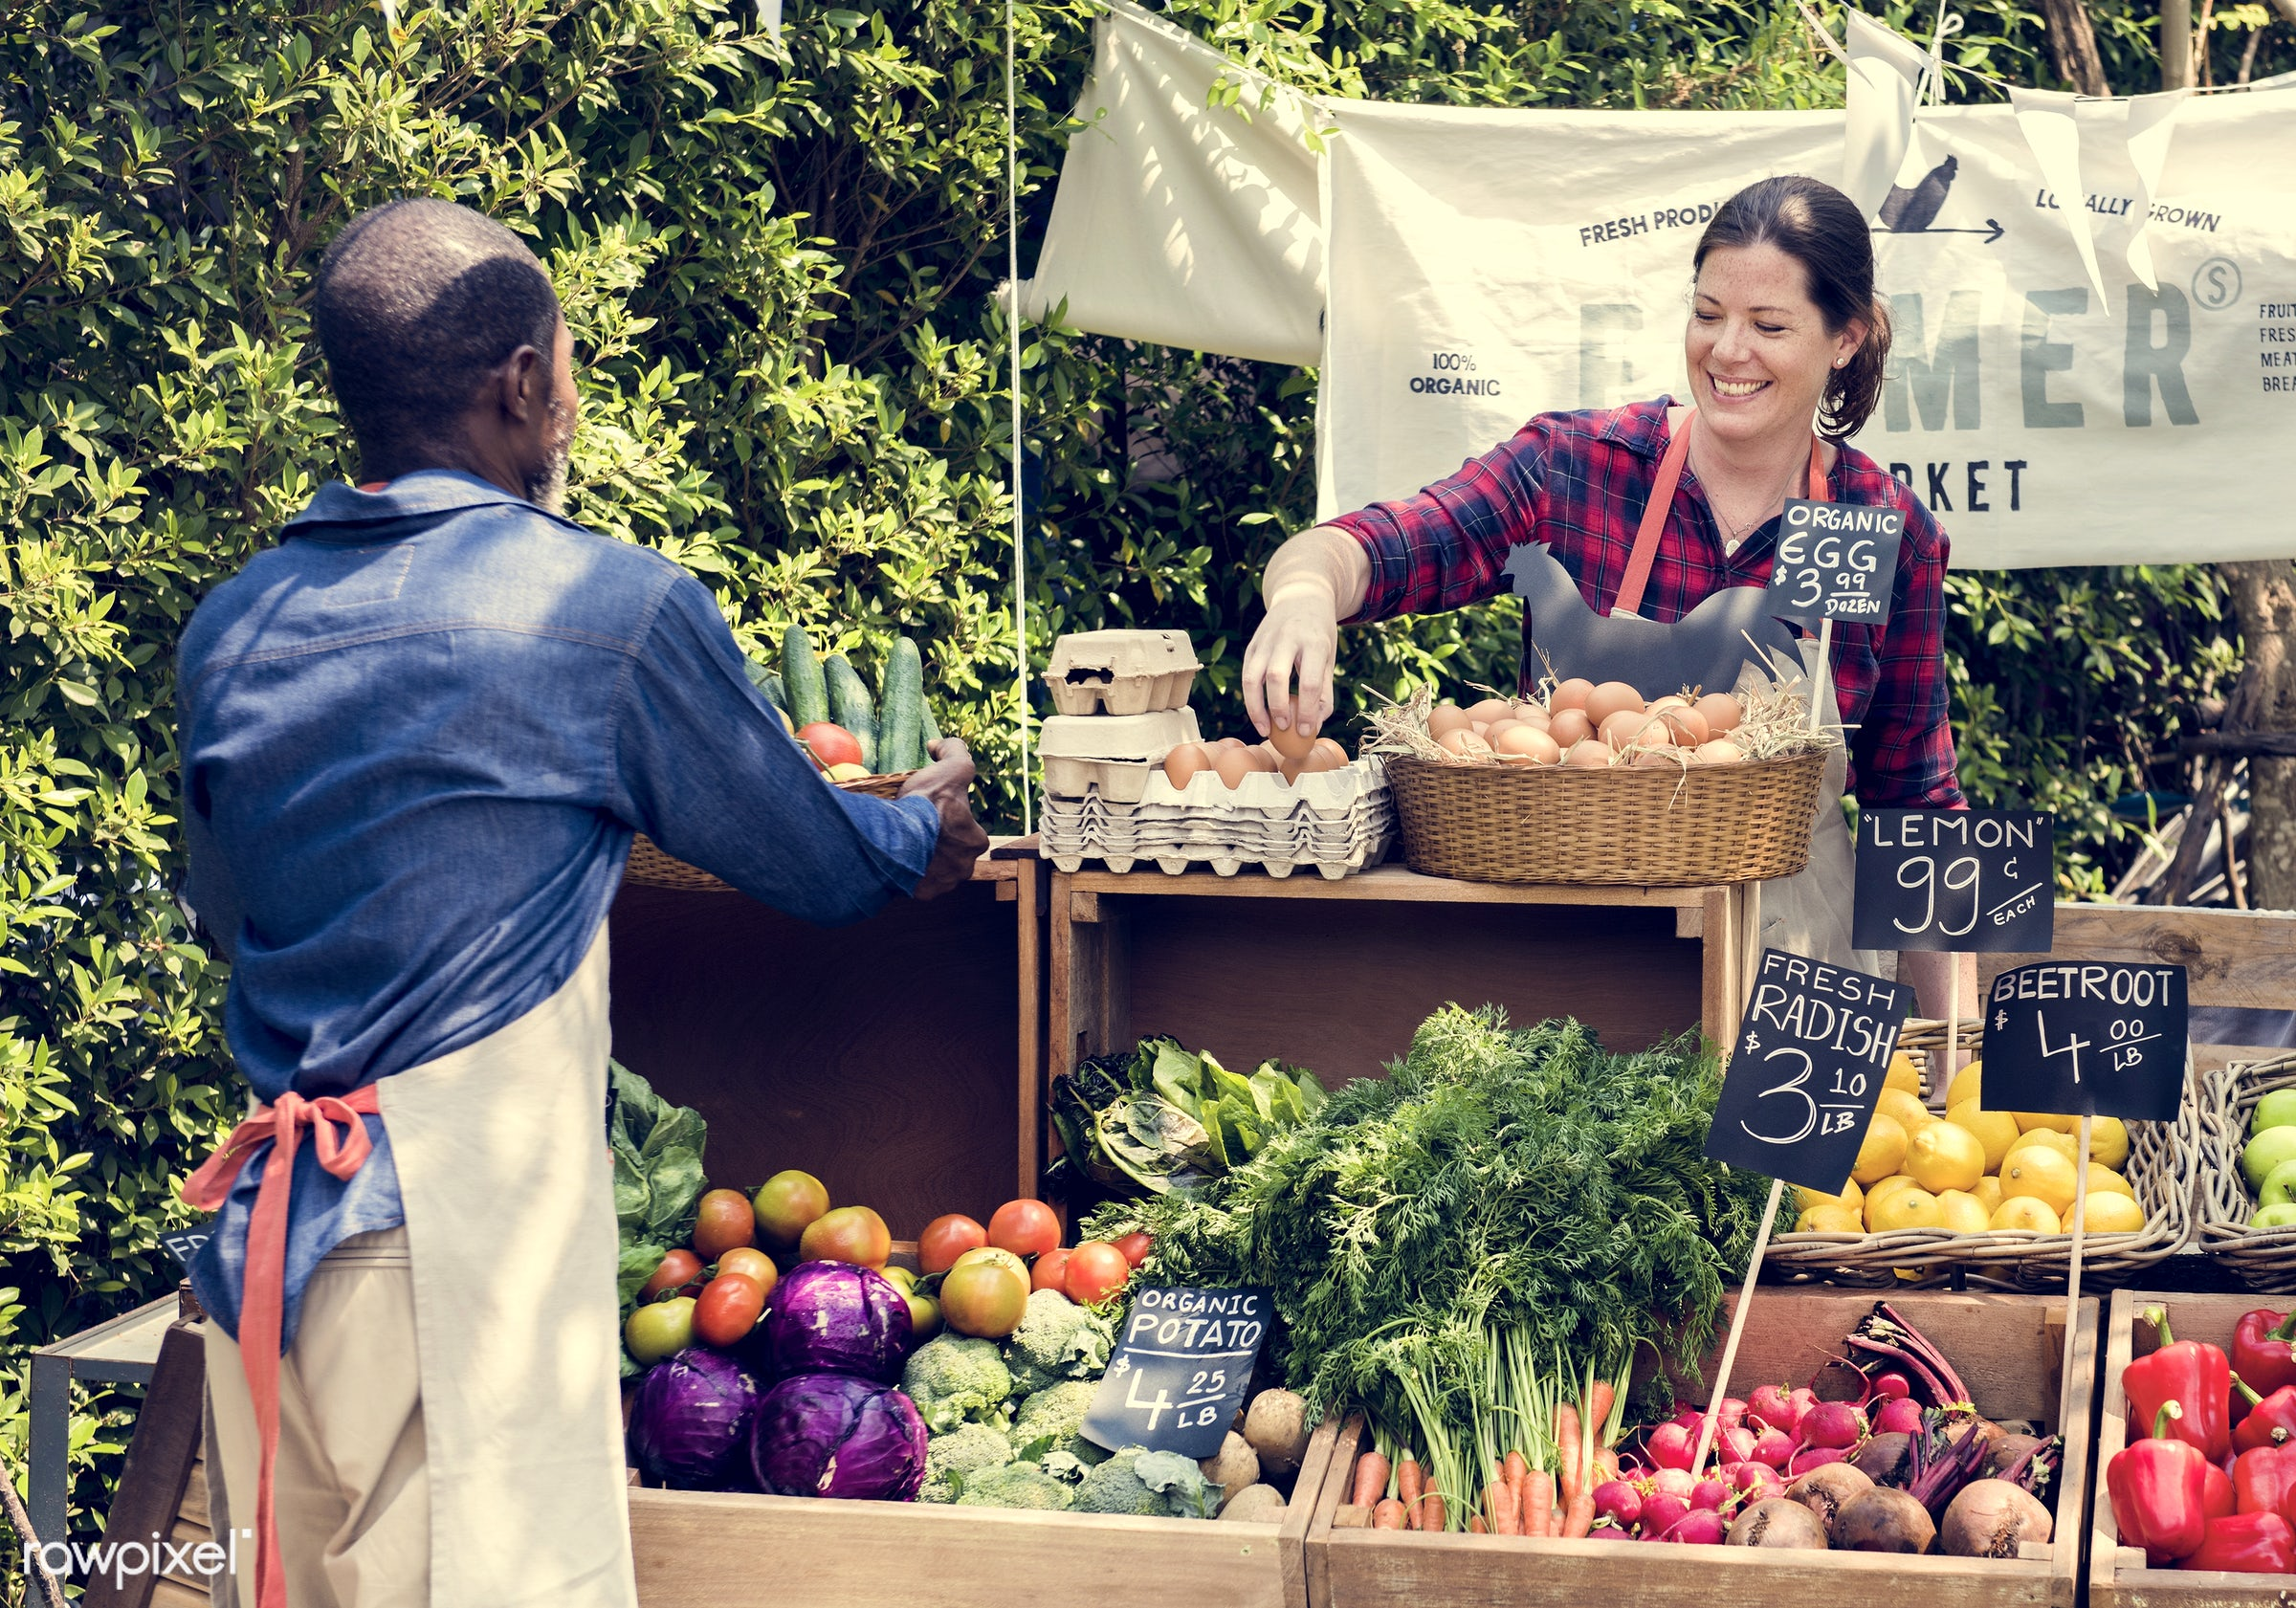 grocery, shop, tomato, store, bell pepper, egg, farmer, woman, cheerful, smiling, fruit, african descent, agriculture,...